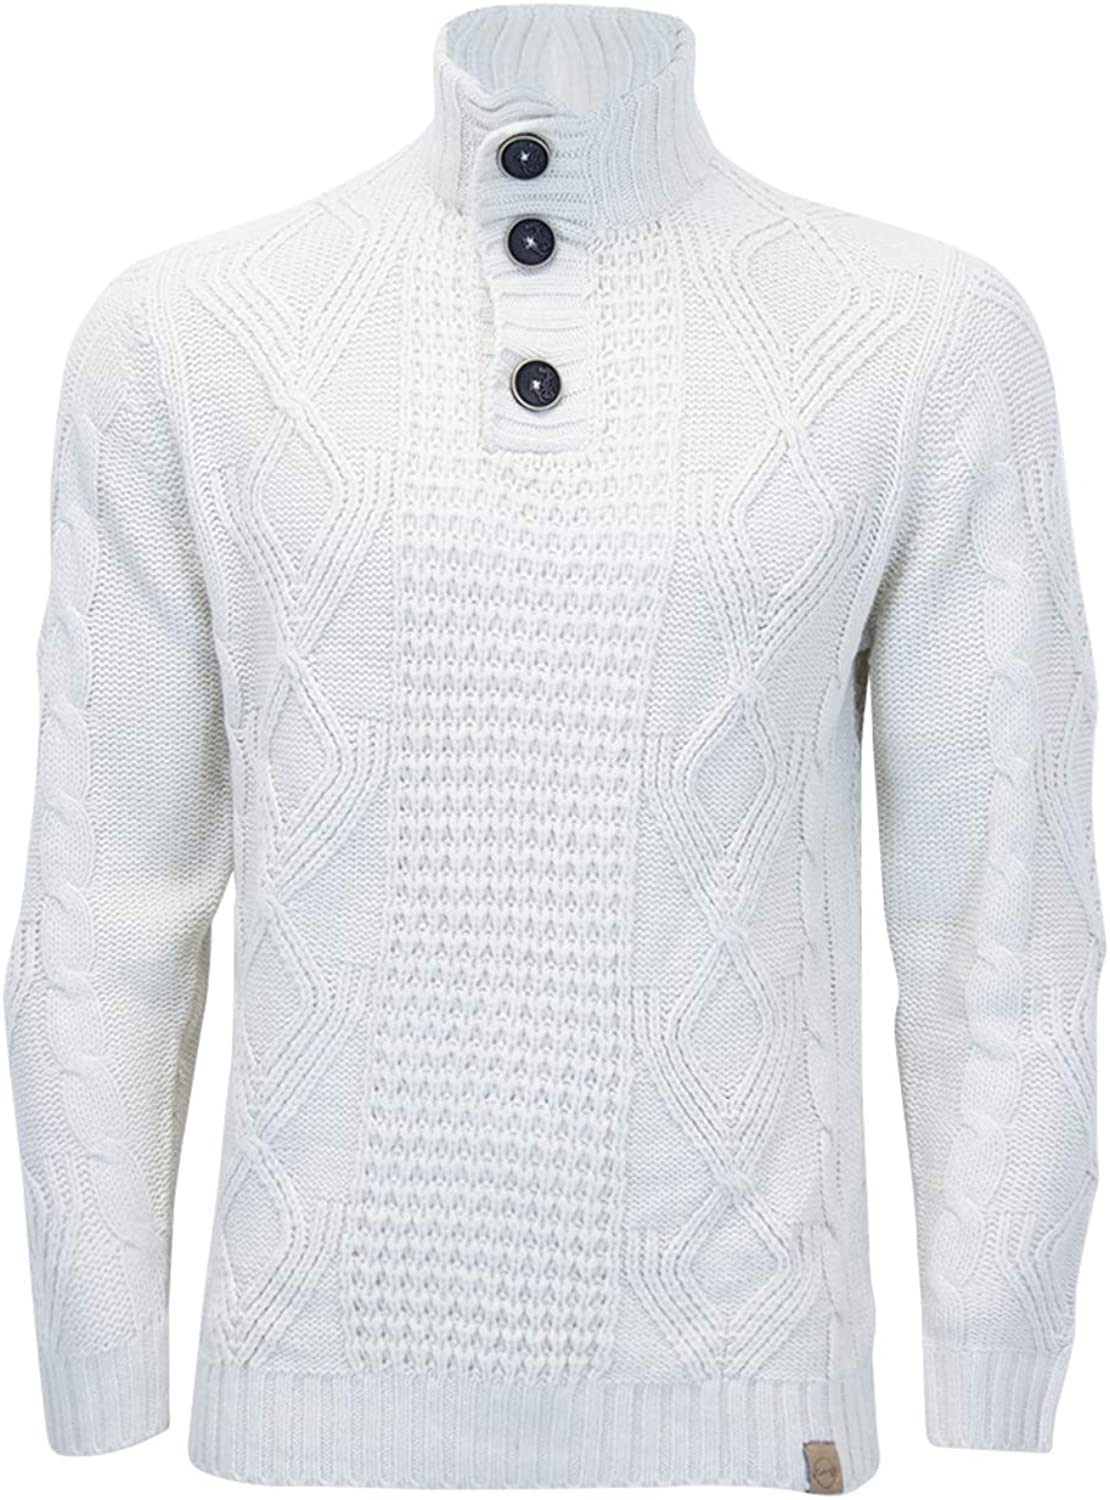 Fashion Star Mens Collared 3 Button Long Sleeve Knit Jumper